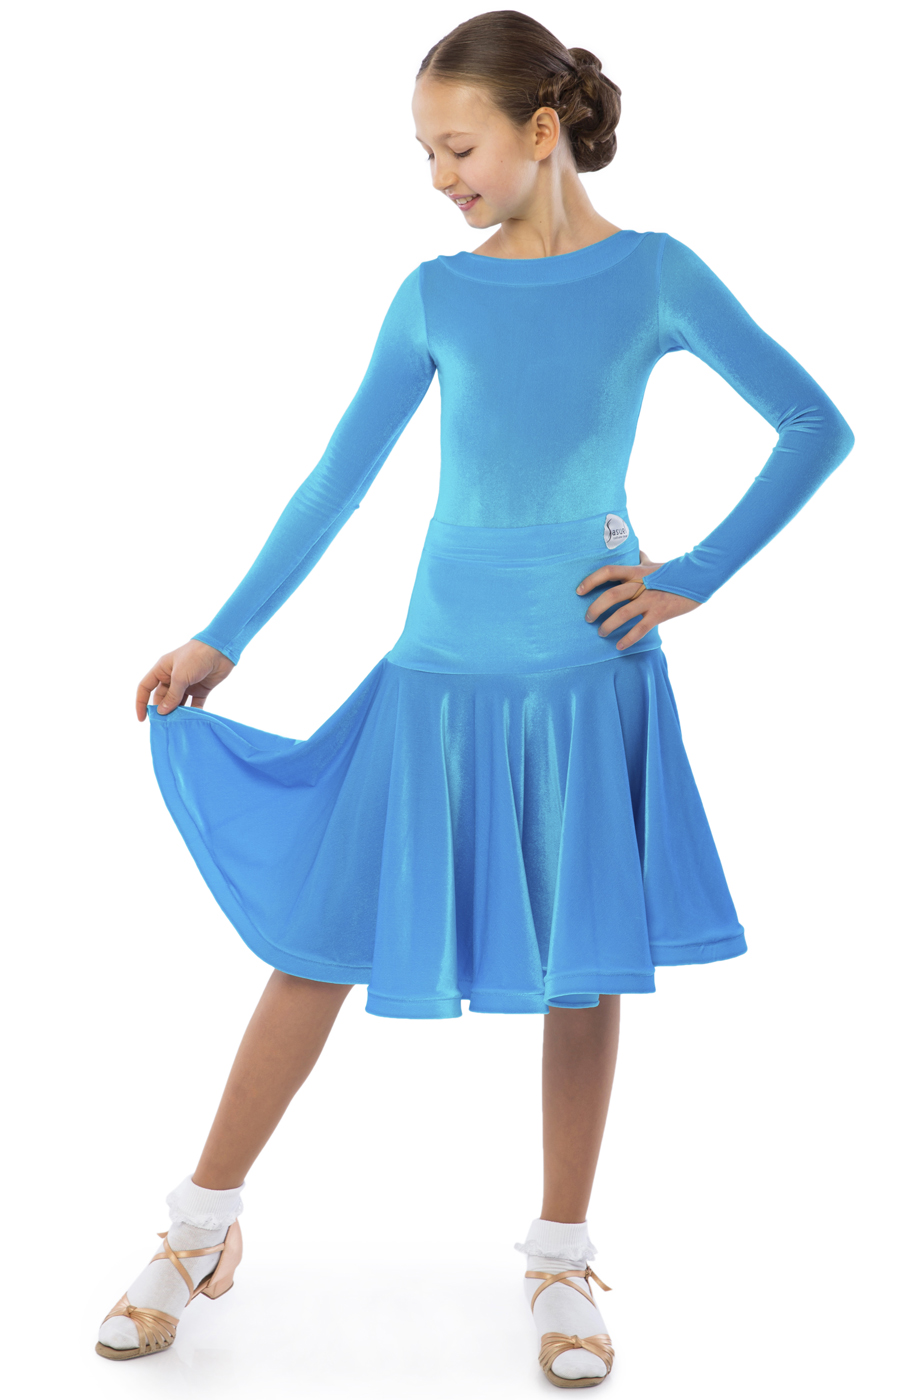 Teen Girl Blue Juvenile Practice Ballroom Dress